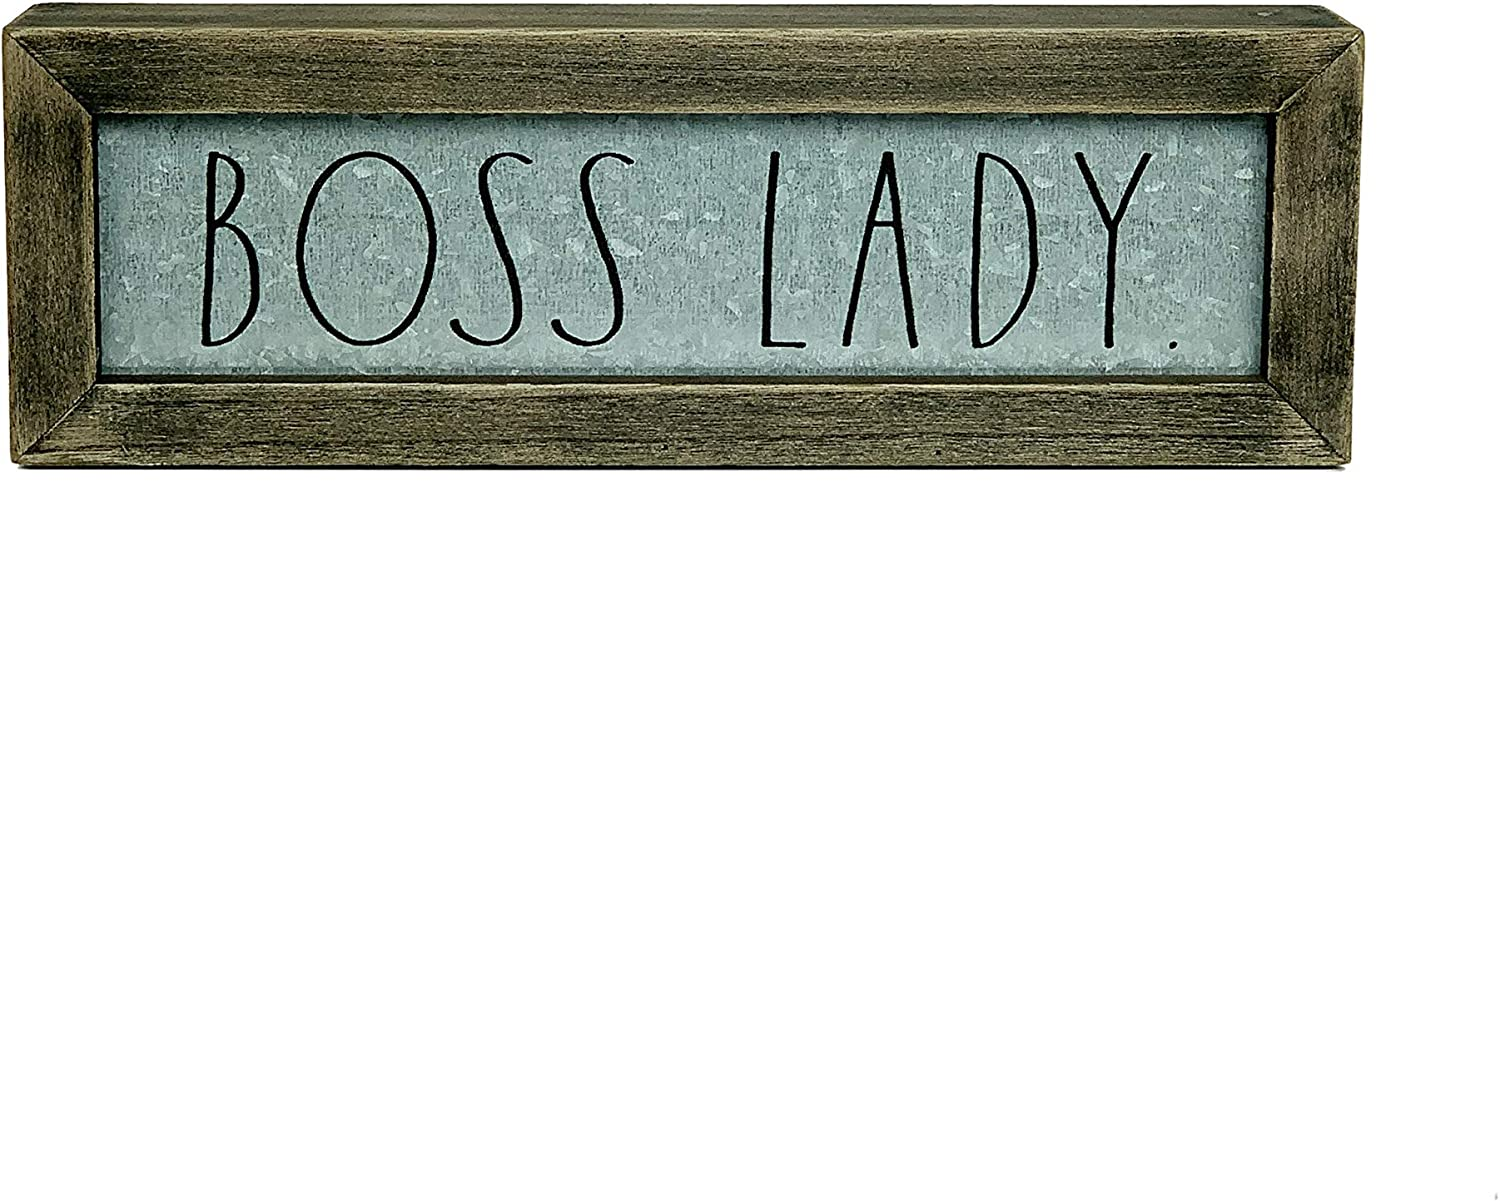 "Rae Dunn""Boss Lady"" Desk Plaque - Inspirational Message Desktop Sign for Home and Office Décor - Décor - Motivational Vintage Display for Artist, Graphic Designer - Chic Distressed Wood and Metal"